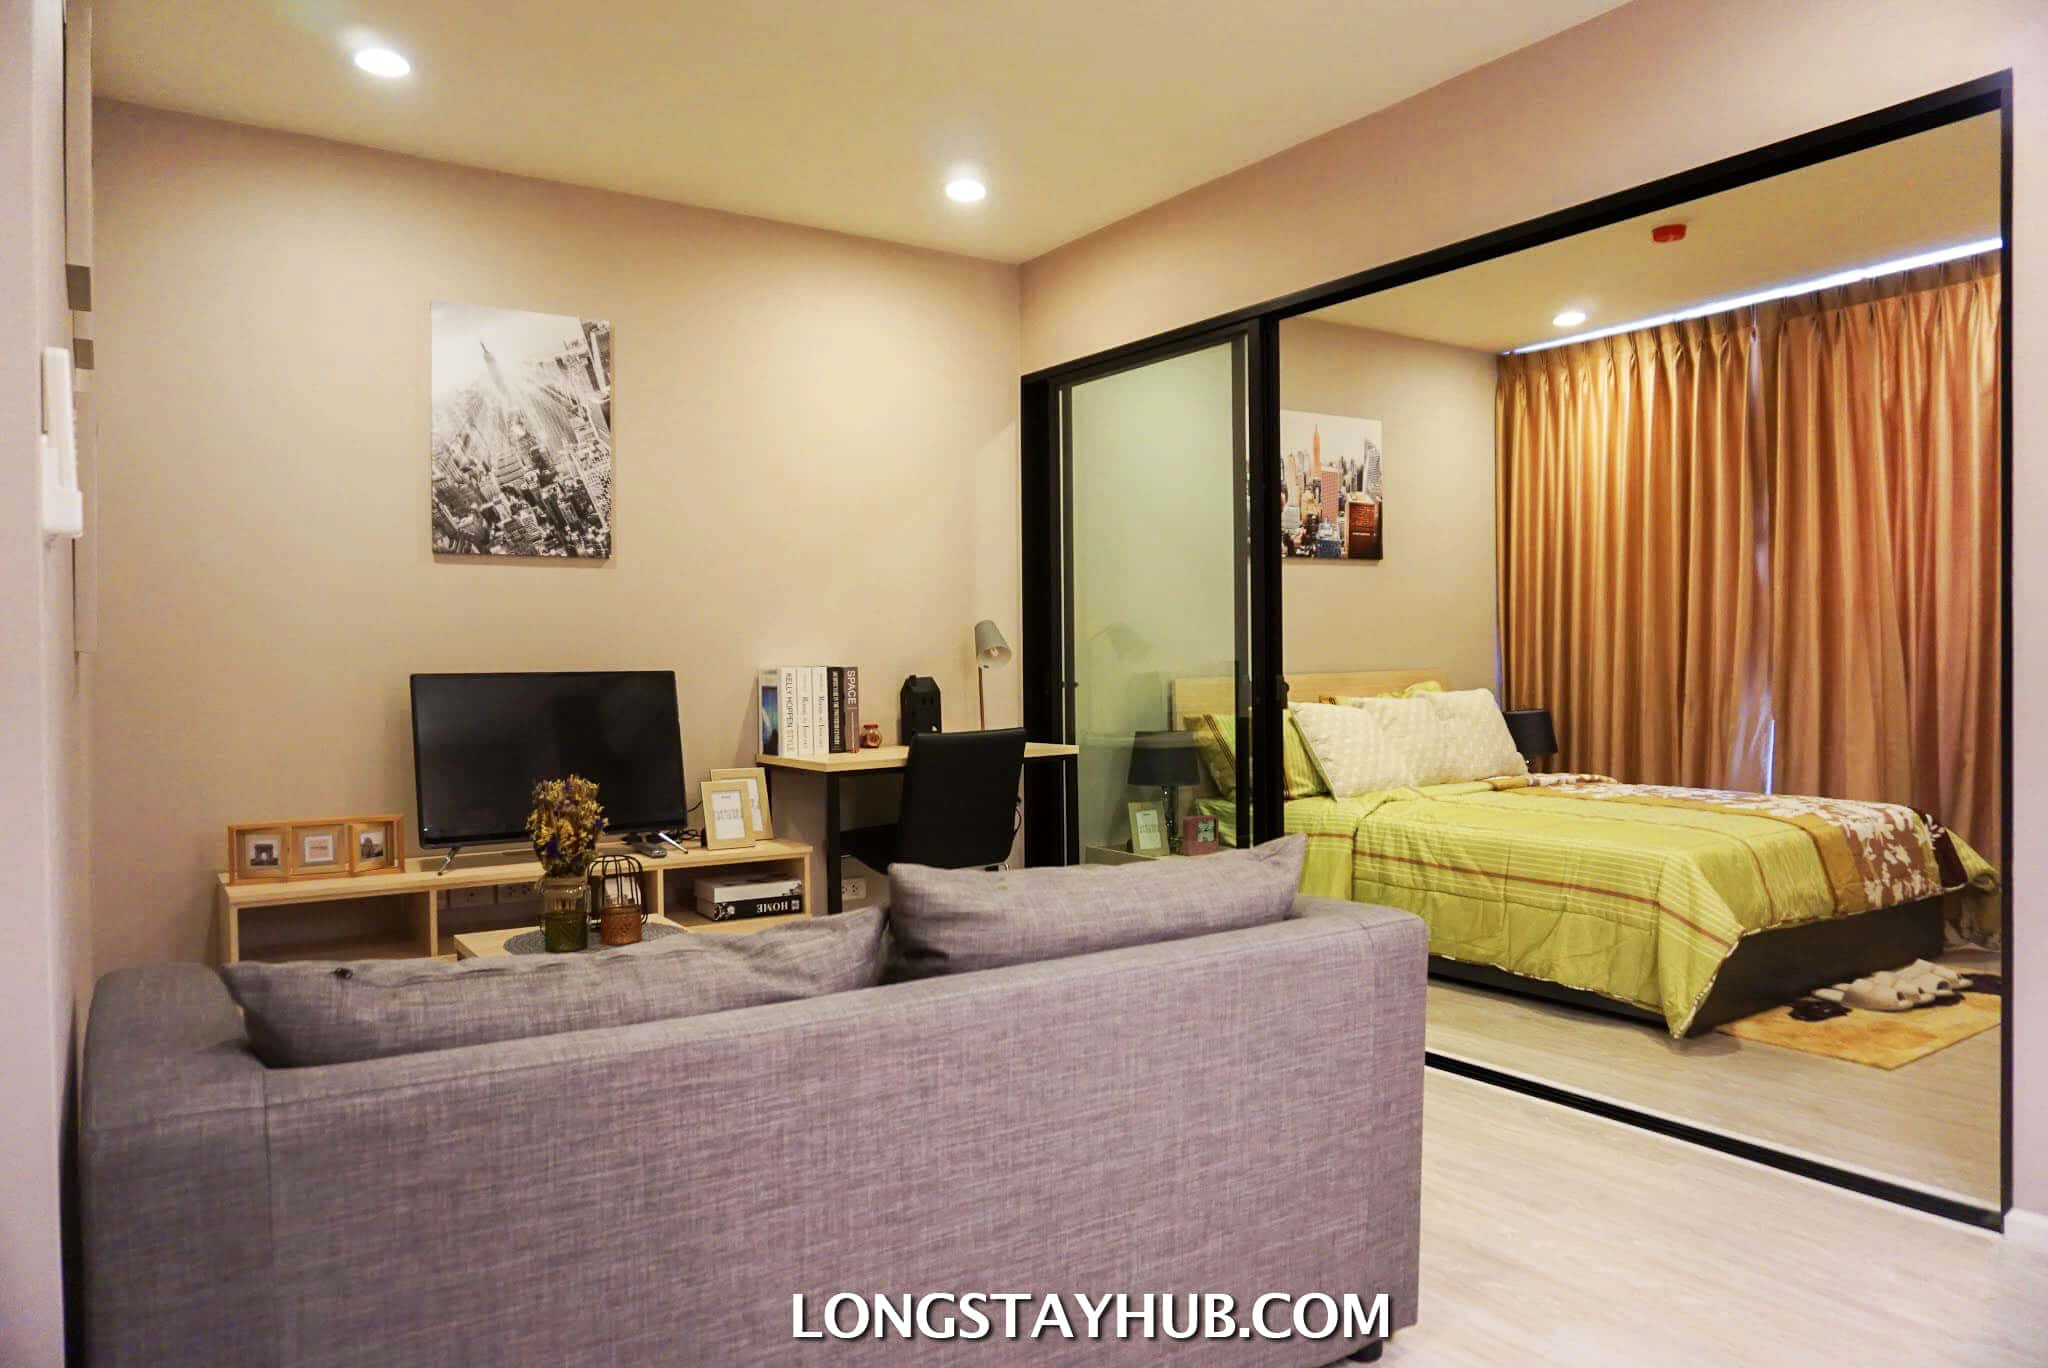 Studio bedroom at Palm Springs Fountain near Nimman rd for rent